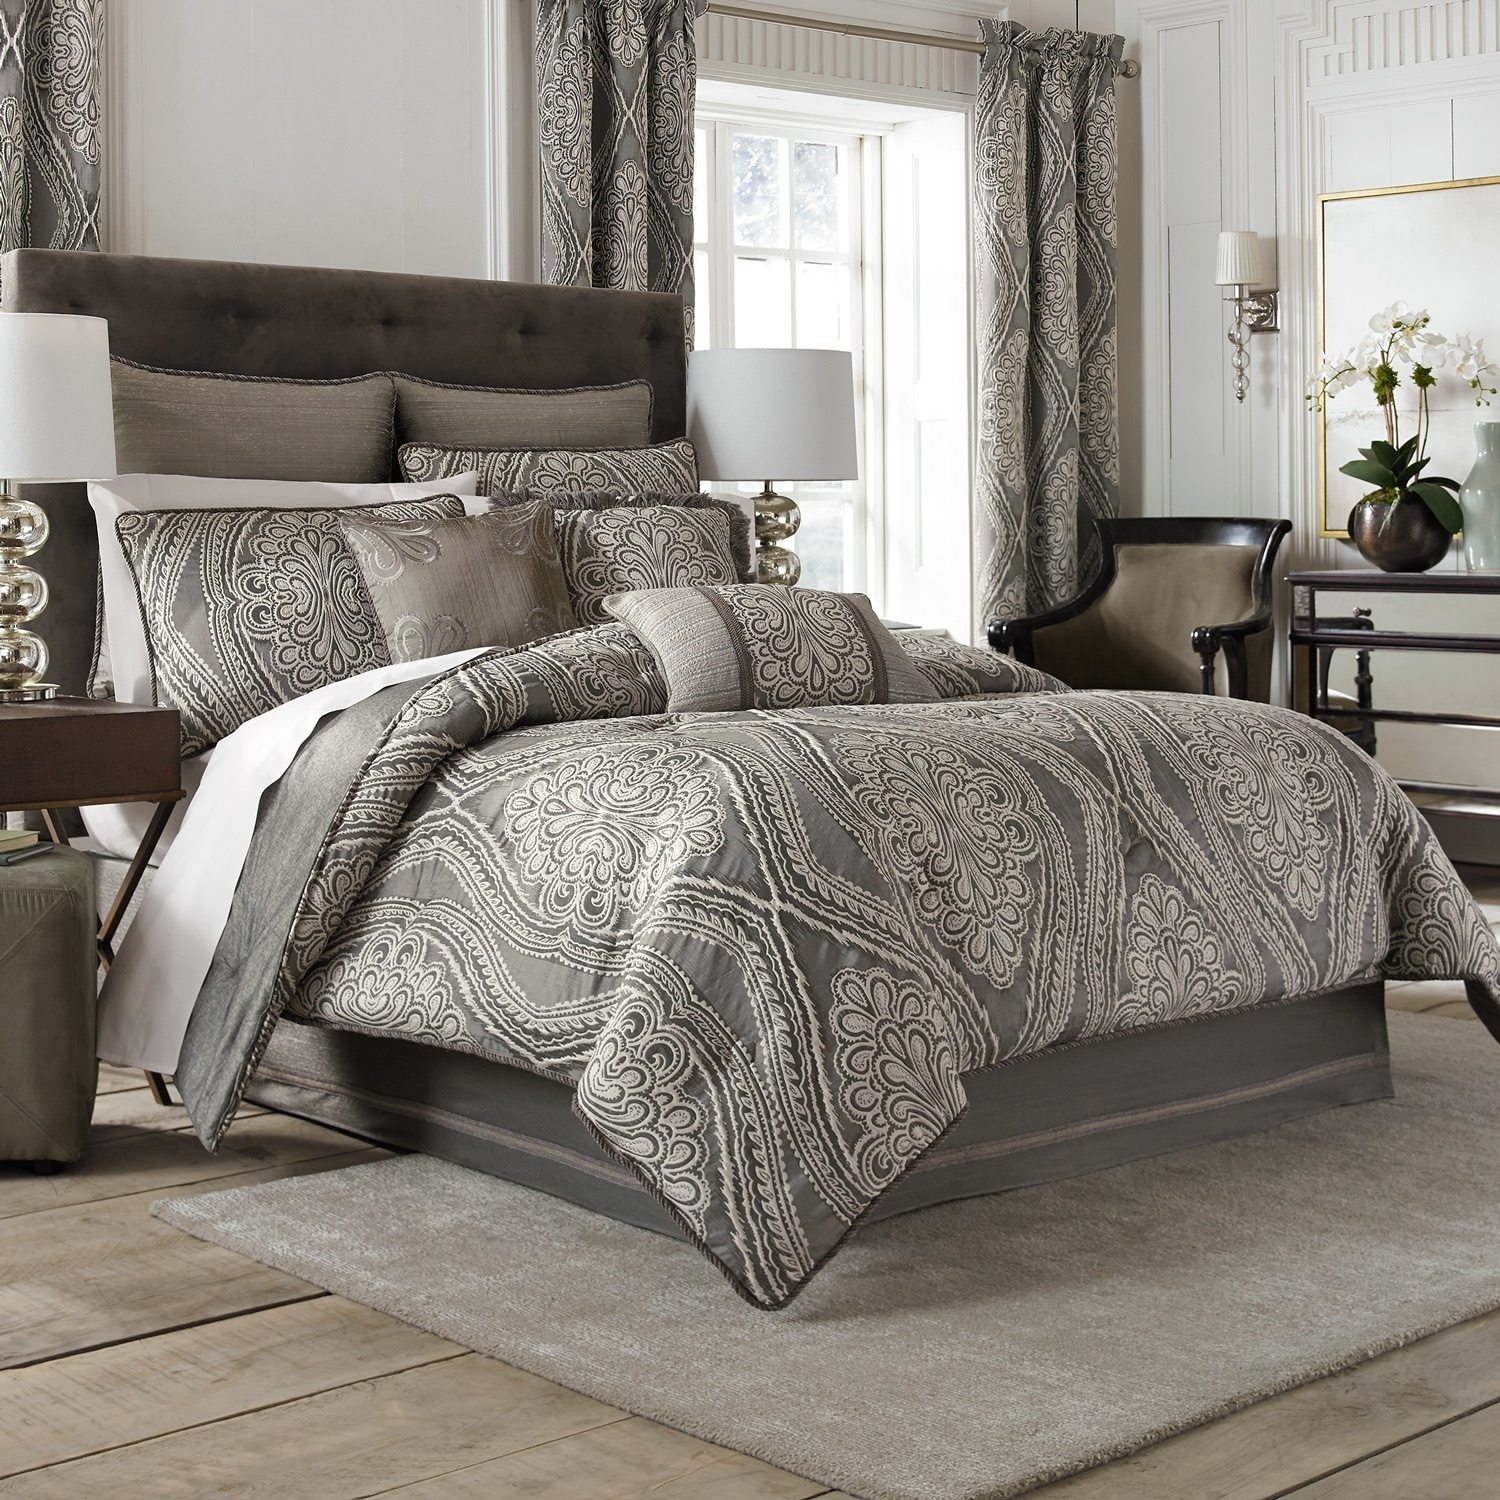 Jcpenney Comforter Sets | Macys Comforters | Queen Bedding Sets